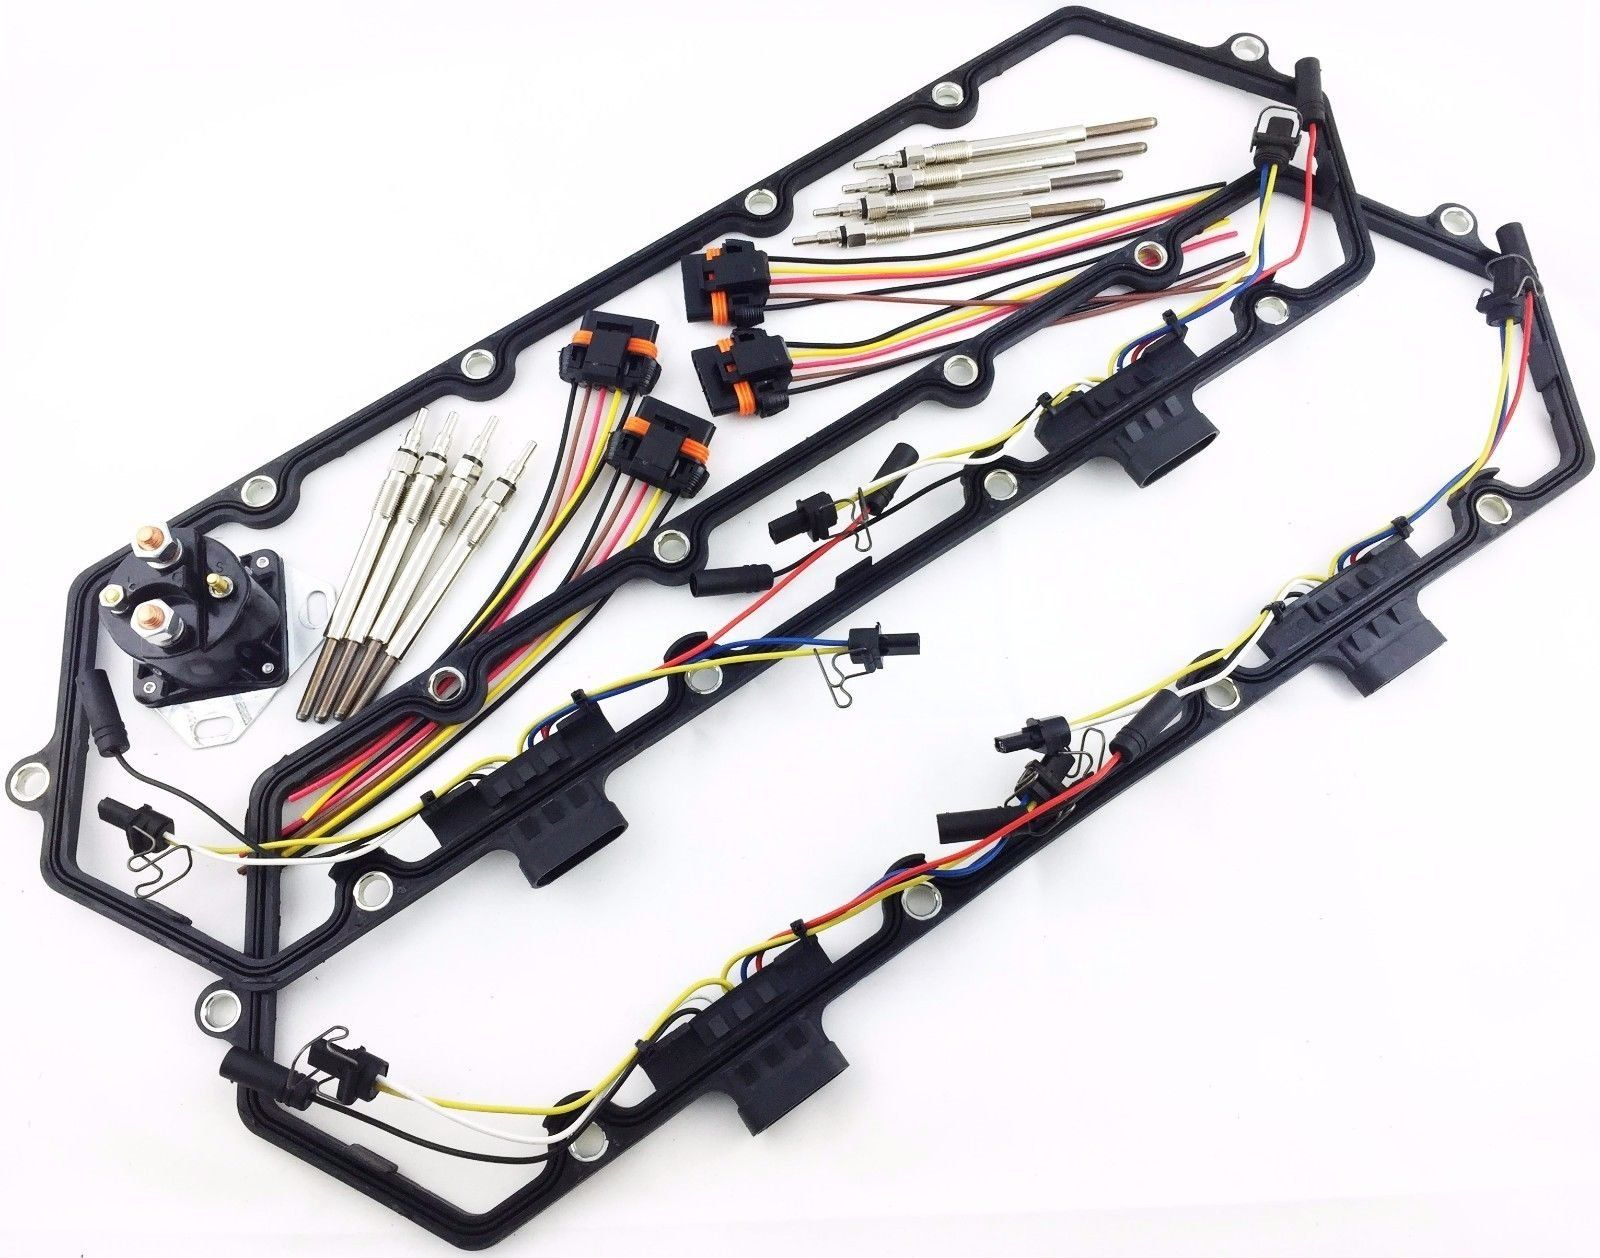 94 97 powerstroke ford 7 3l valve cover gaskets injector glow plug relay harness awesome products selected by anna churchill [ 1600 x 1258 Pixel ]